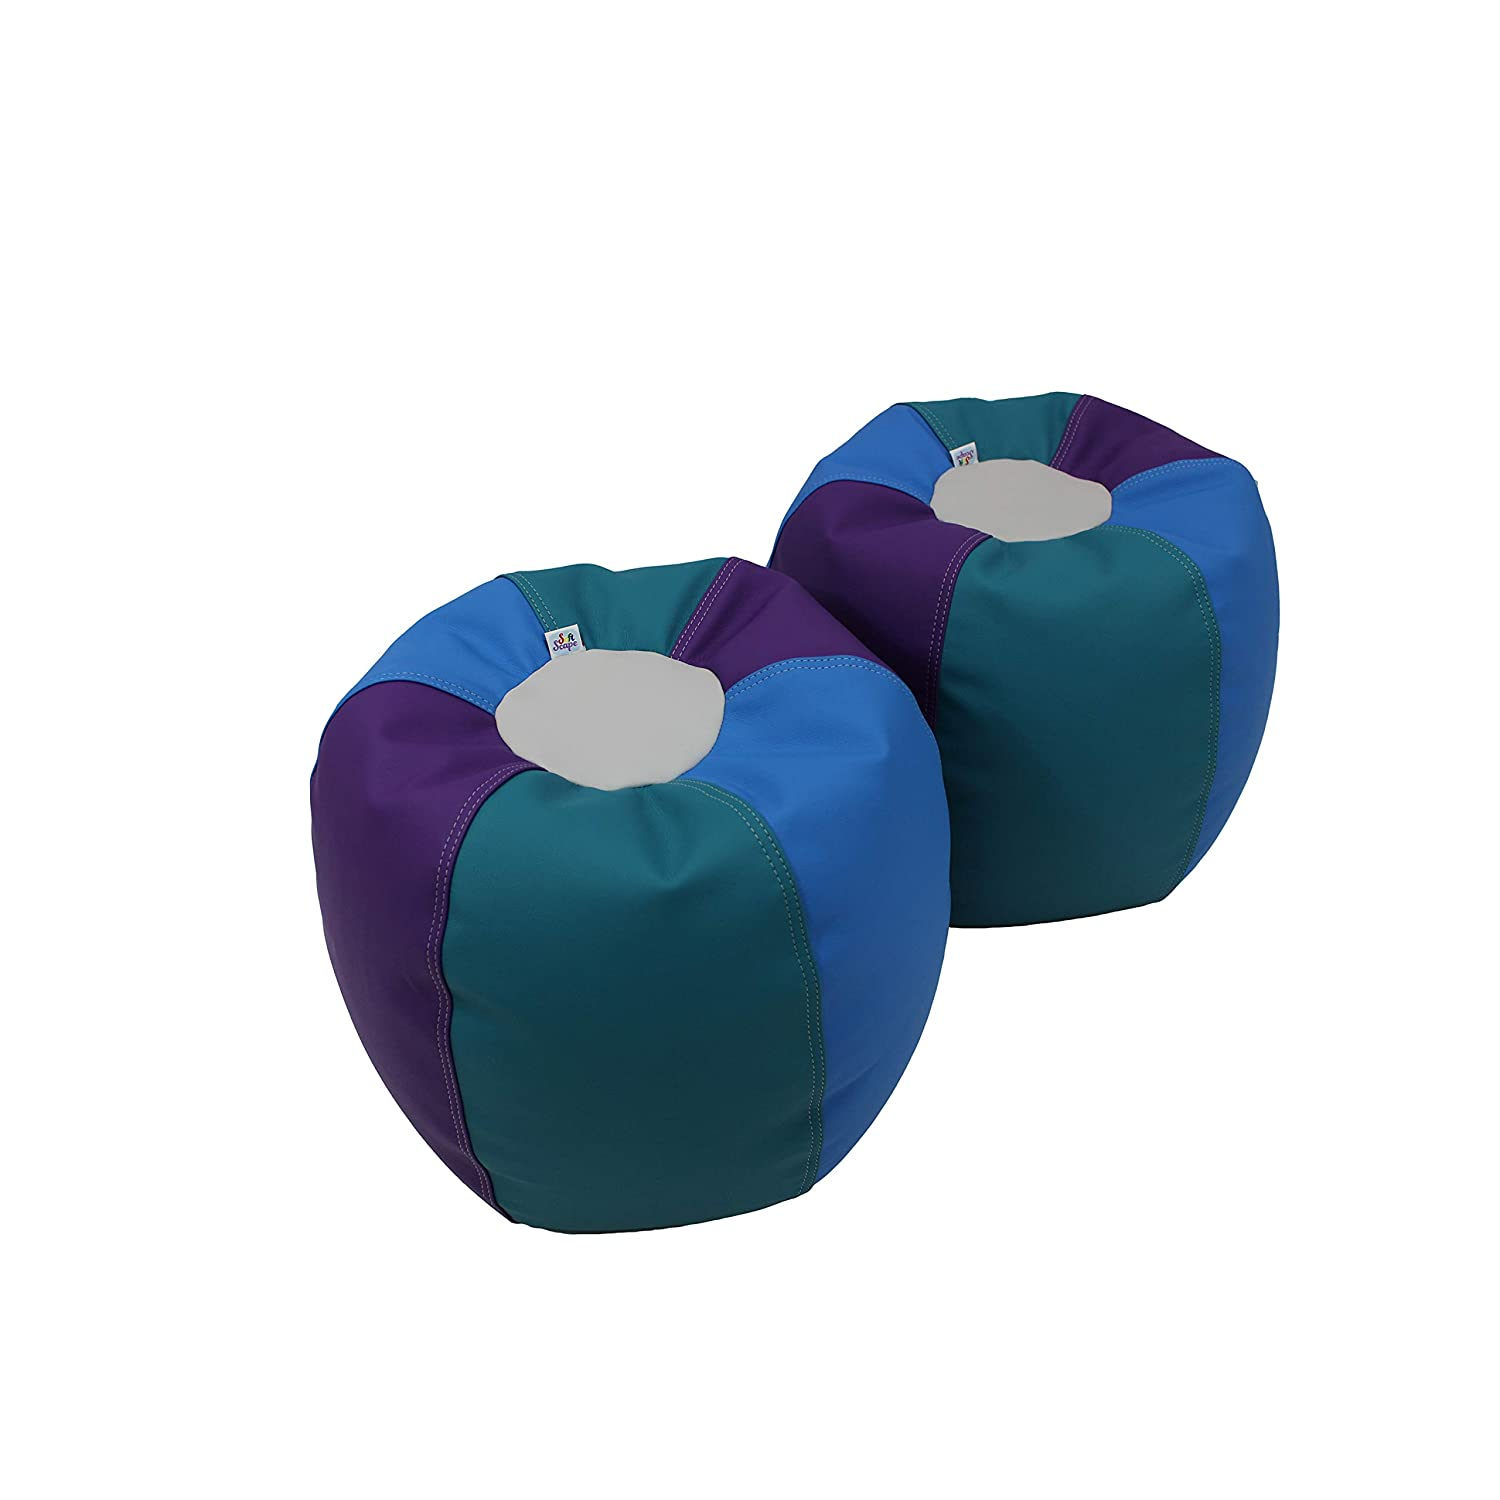 FDP SoftScape 12 inch Long-awaited Puffs Bean for Kids Opening large release sale Seating Set Colorful